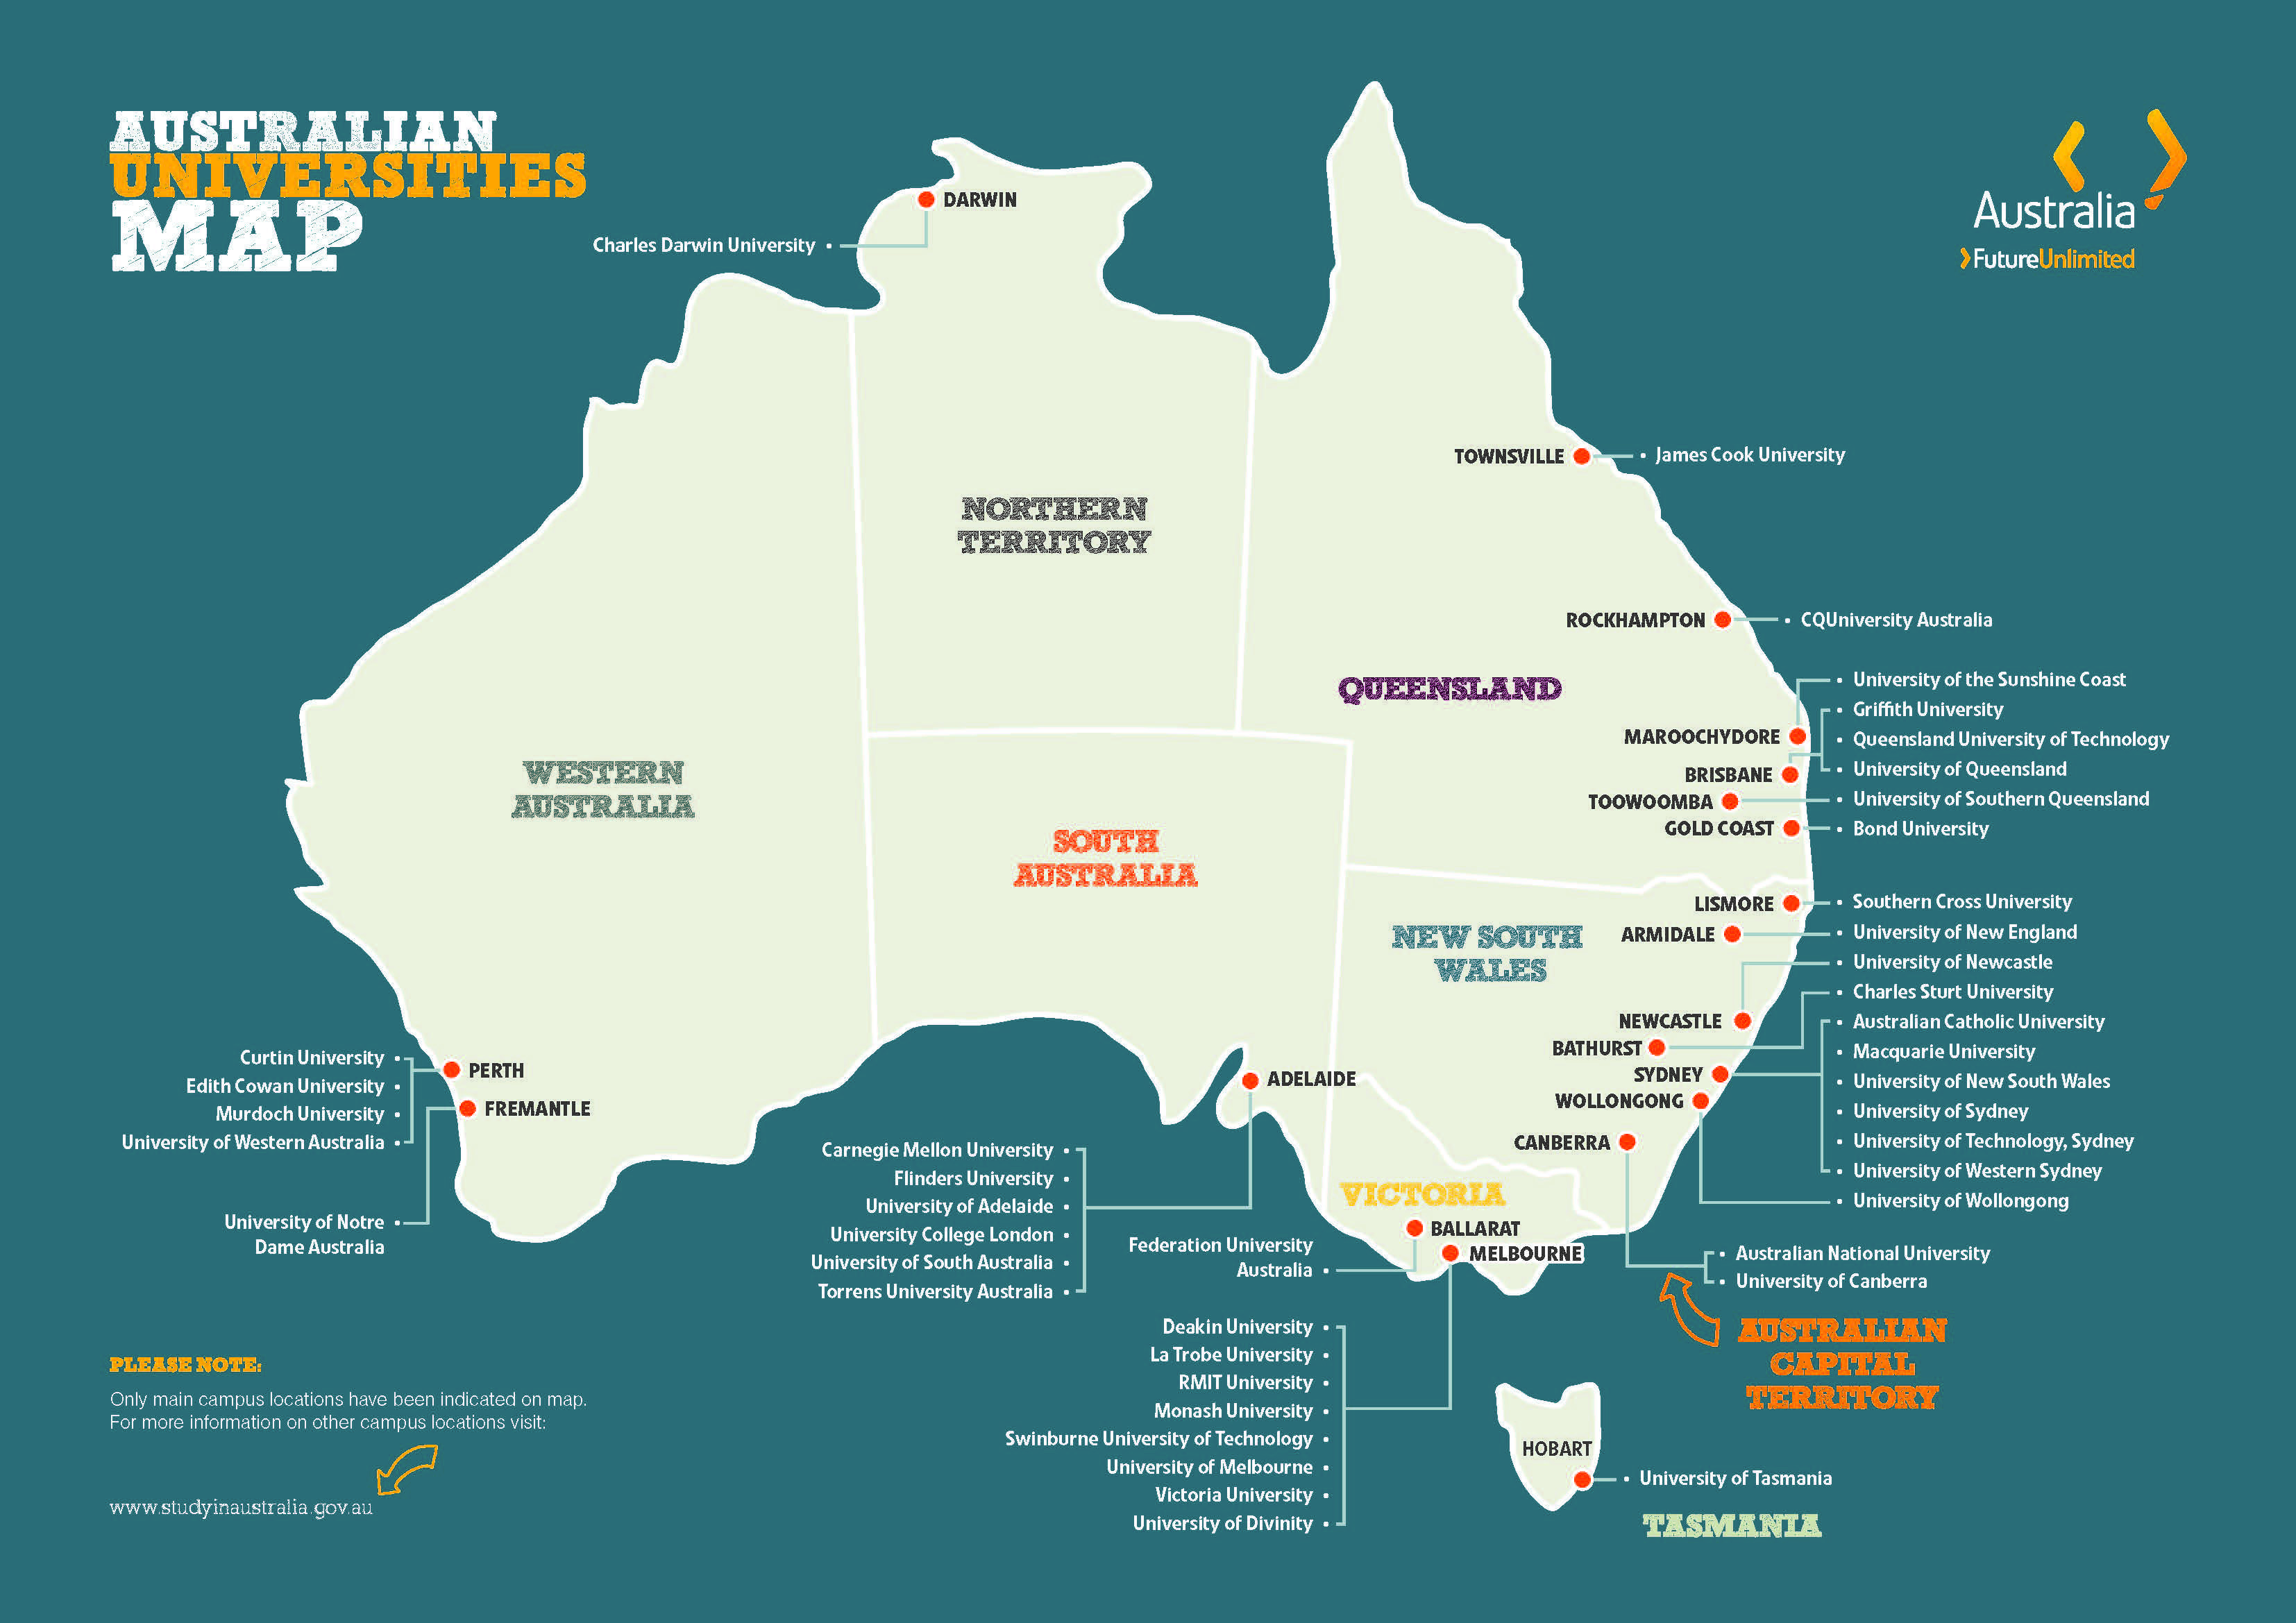 List of Australian Universities – Show Map of Australia